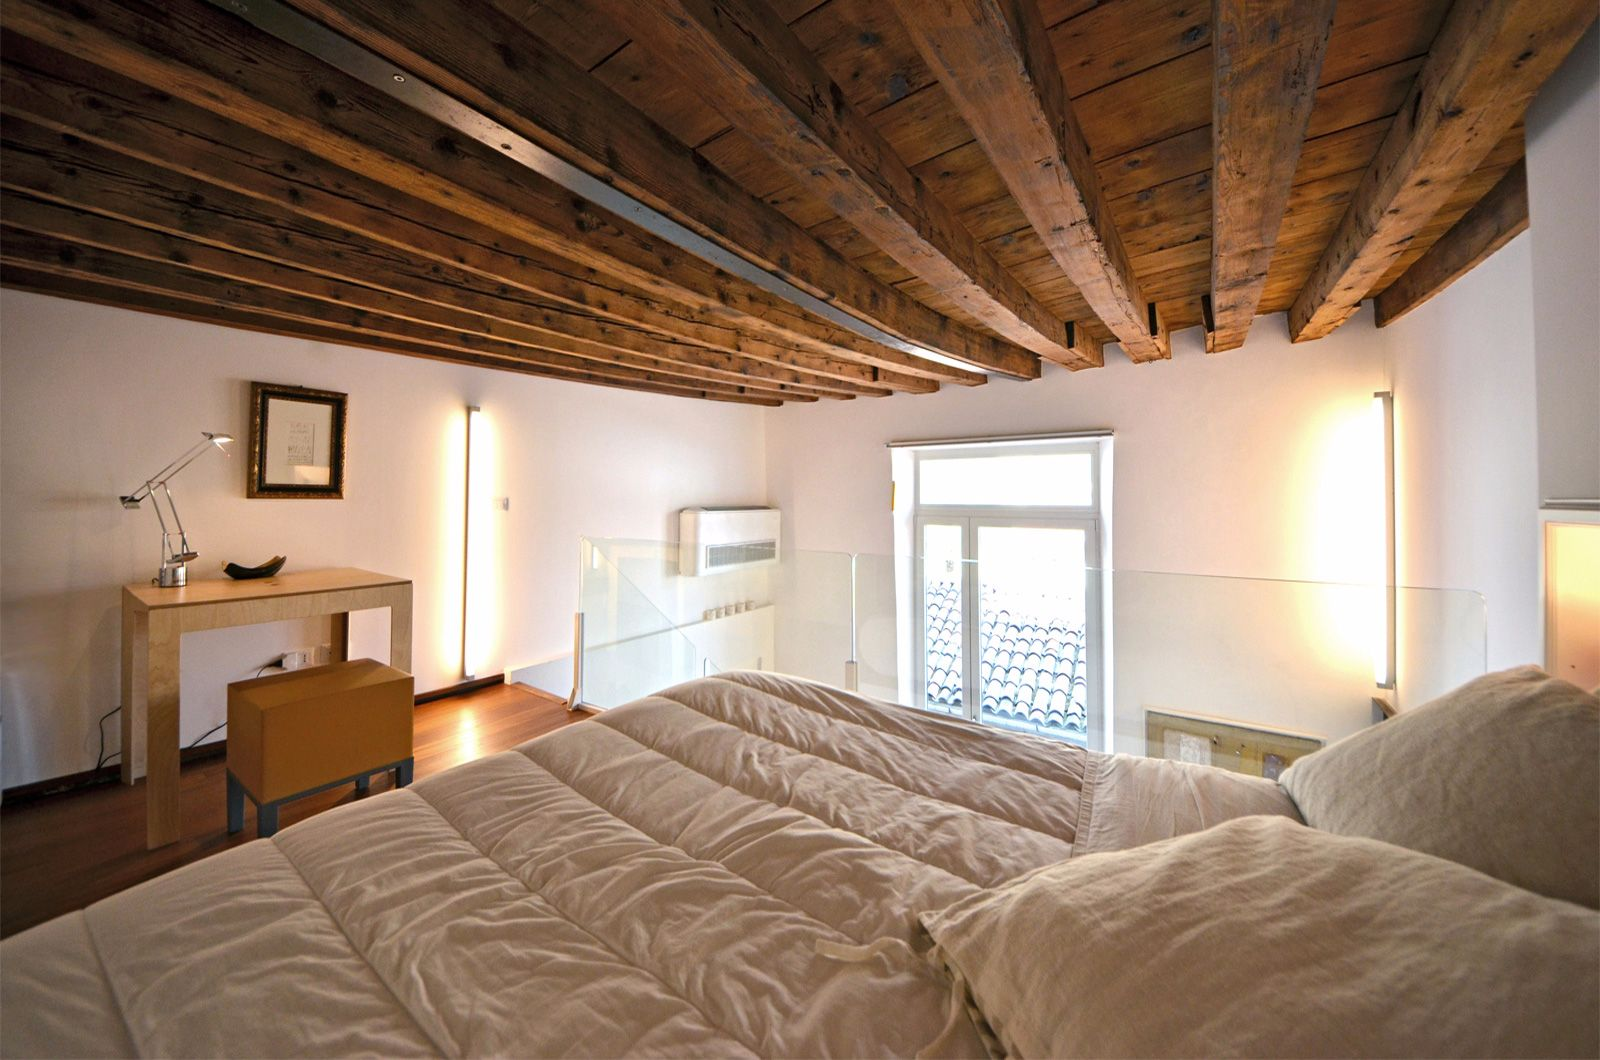 it is furnished with queen size bed, wardrobe, desk